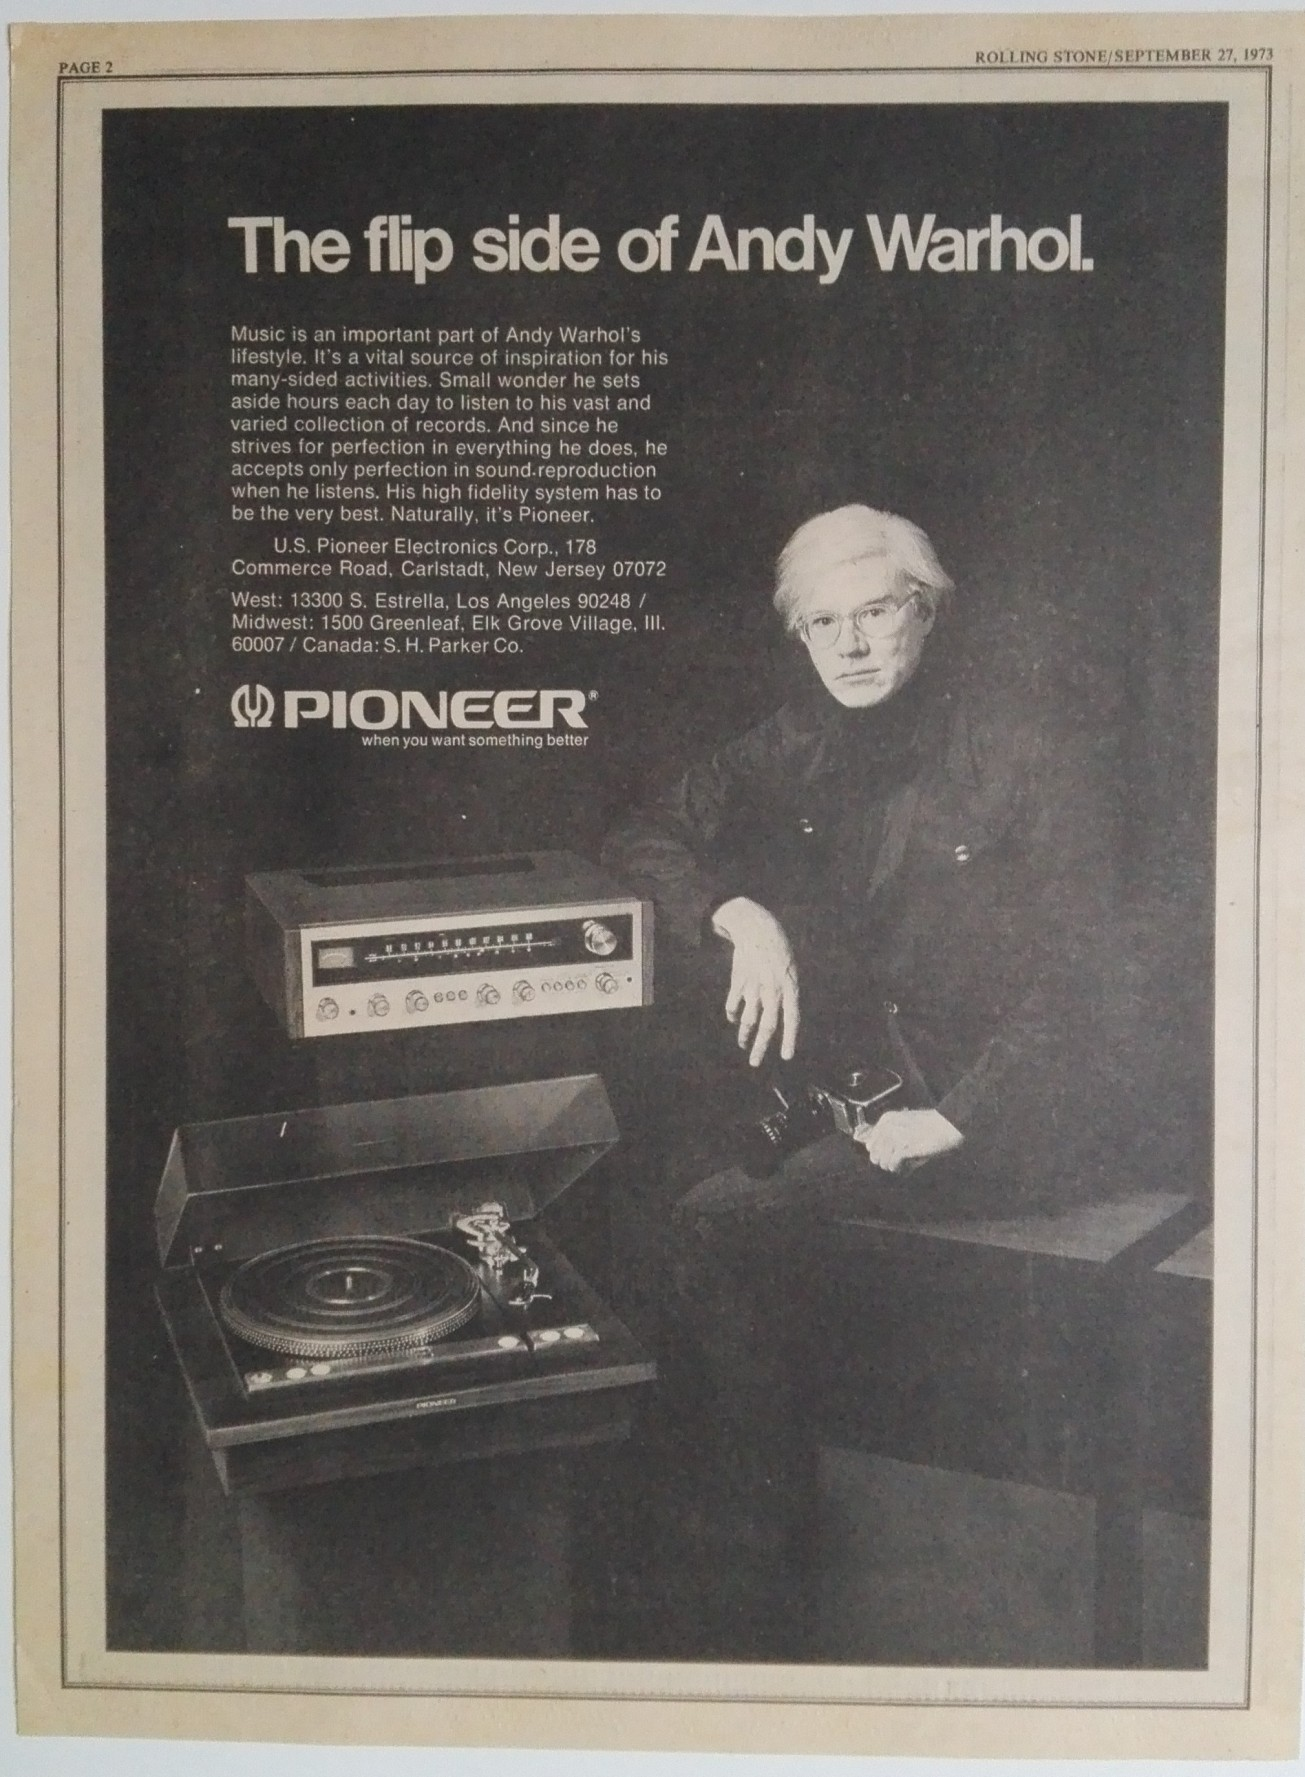 AW PIONEER 2